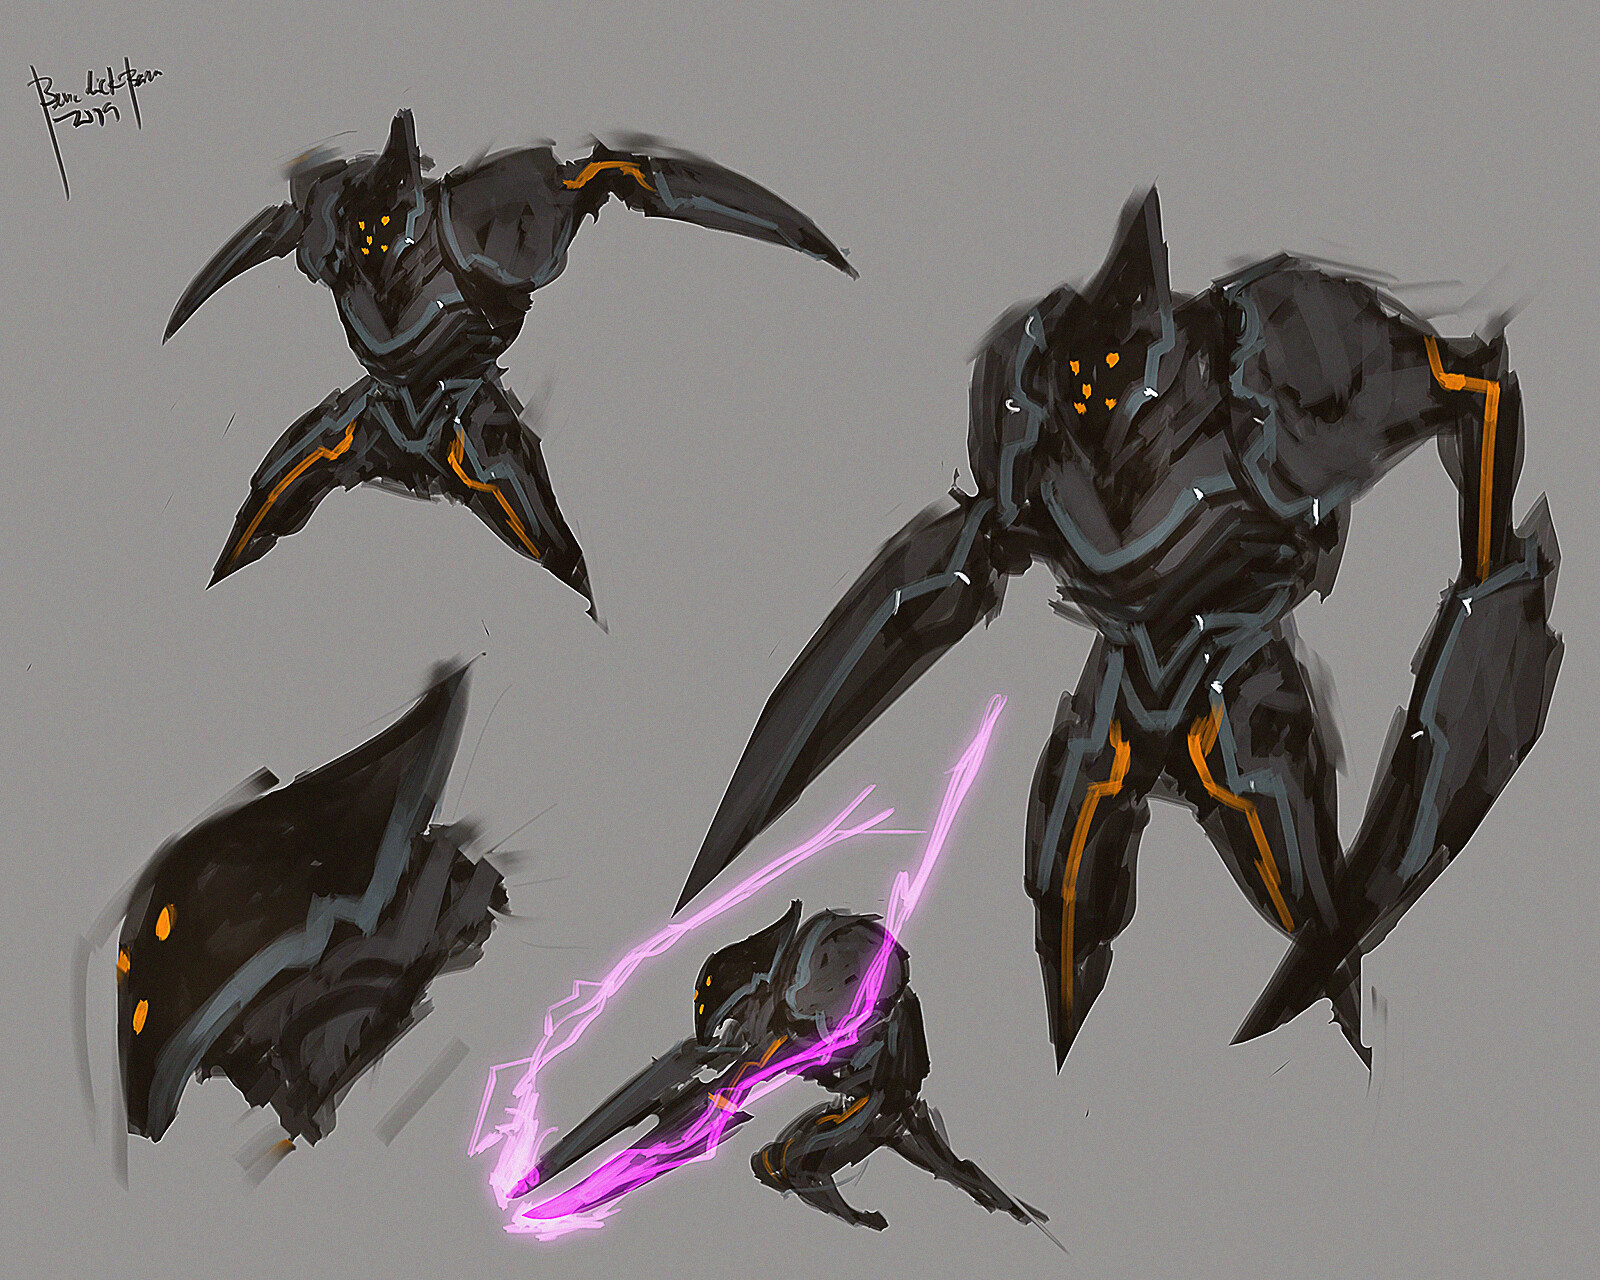 heavy alien soldier unit - his main weapon: spear-like arms that can project energy plasma.